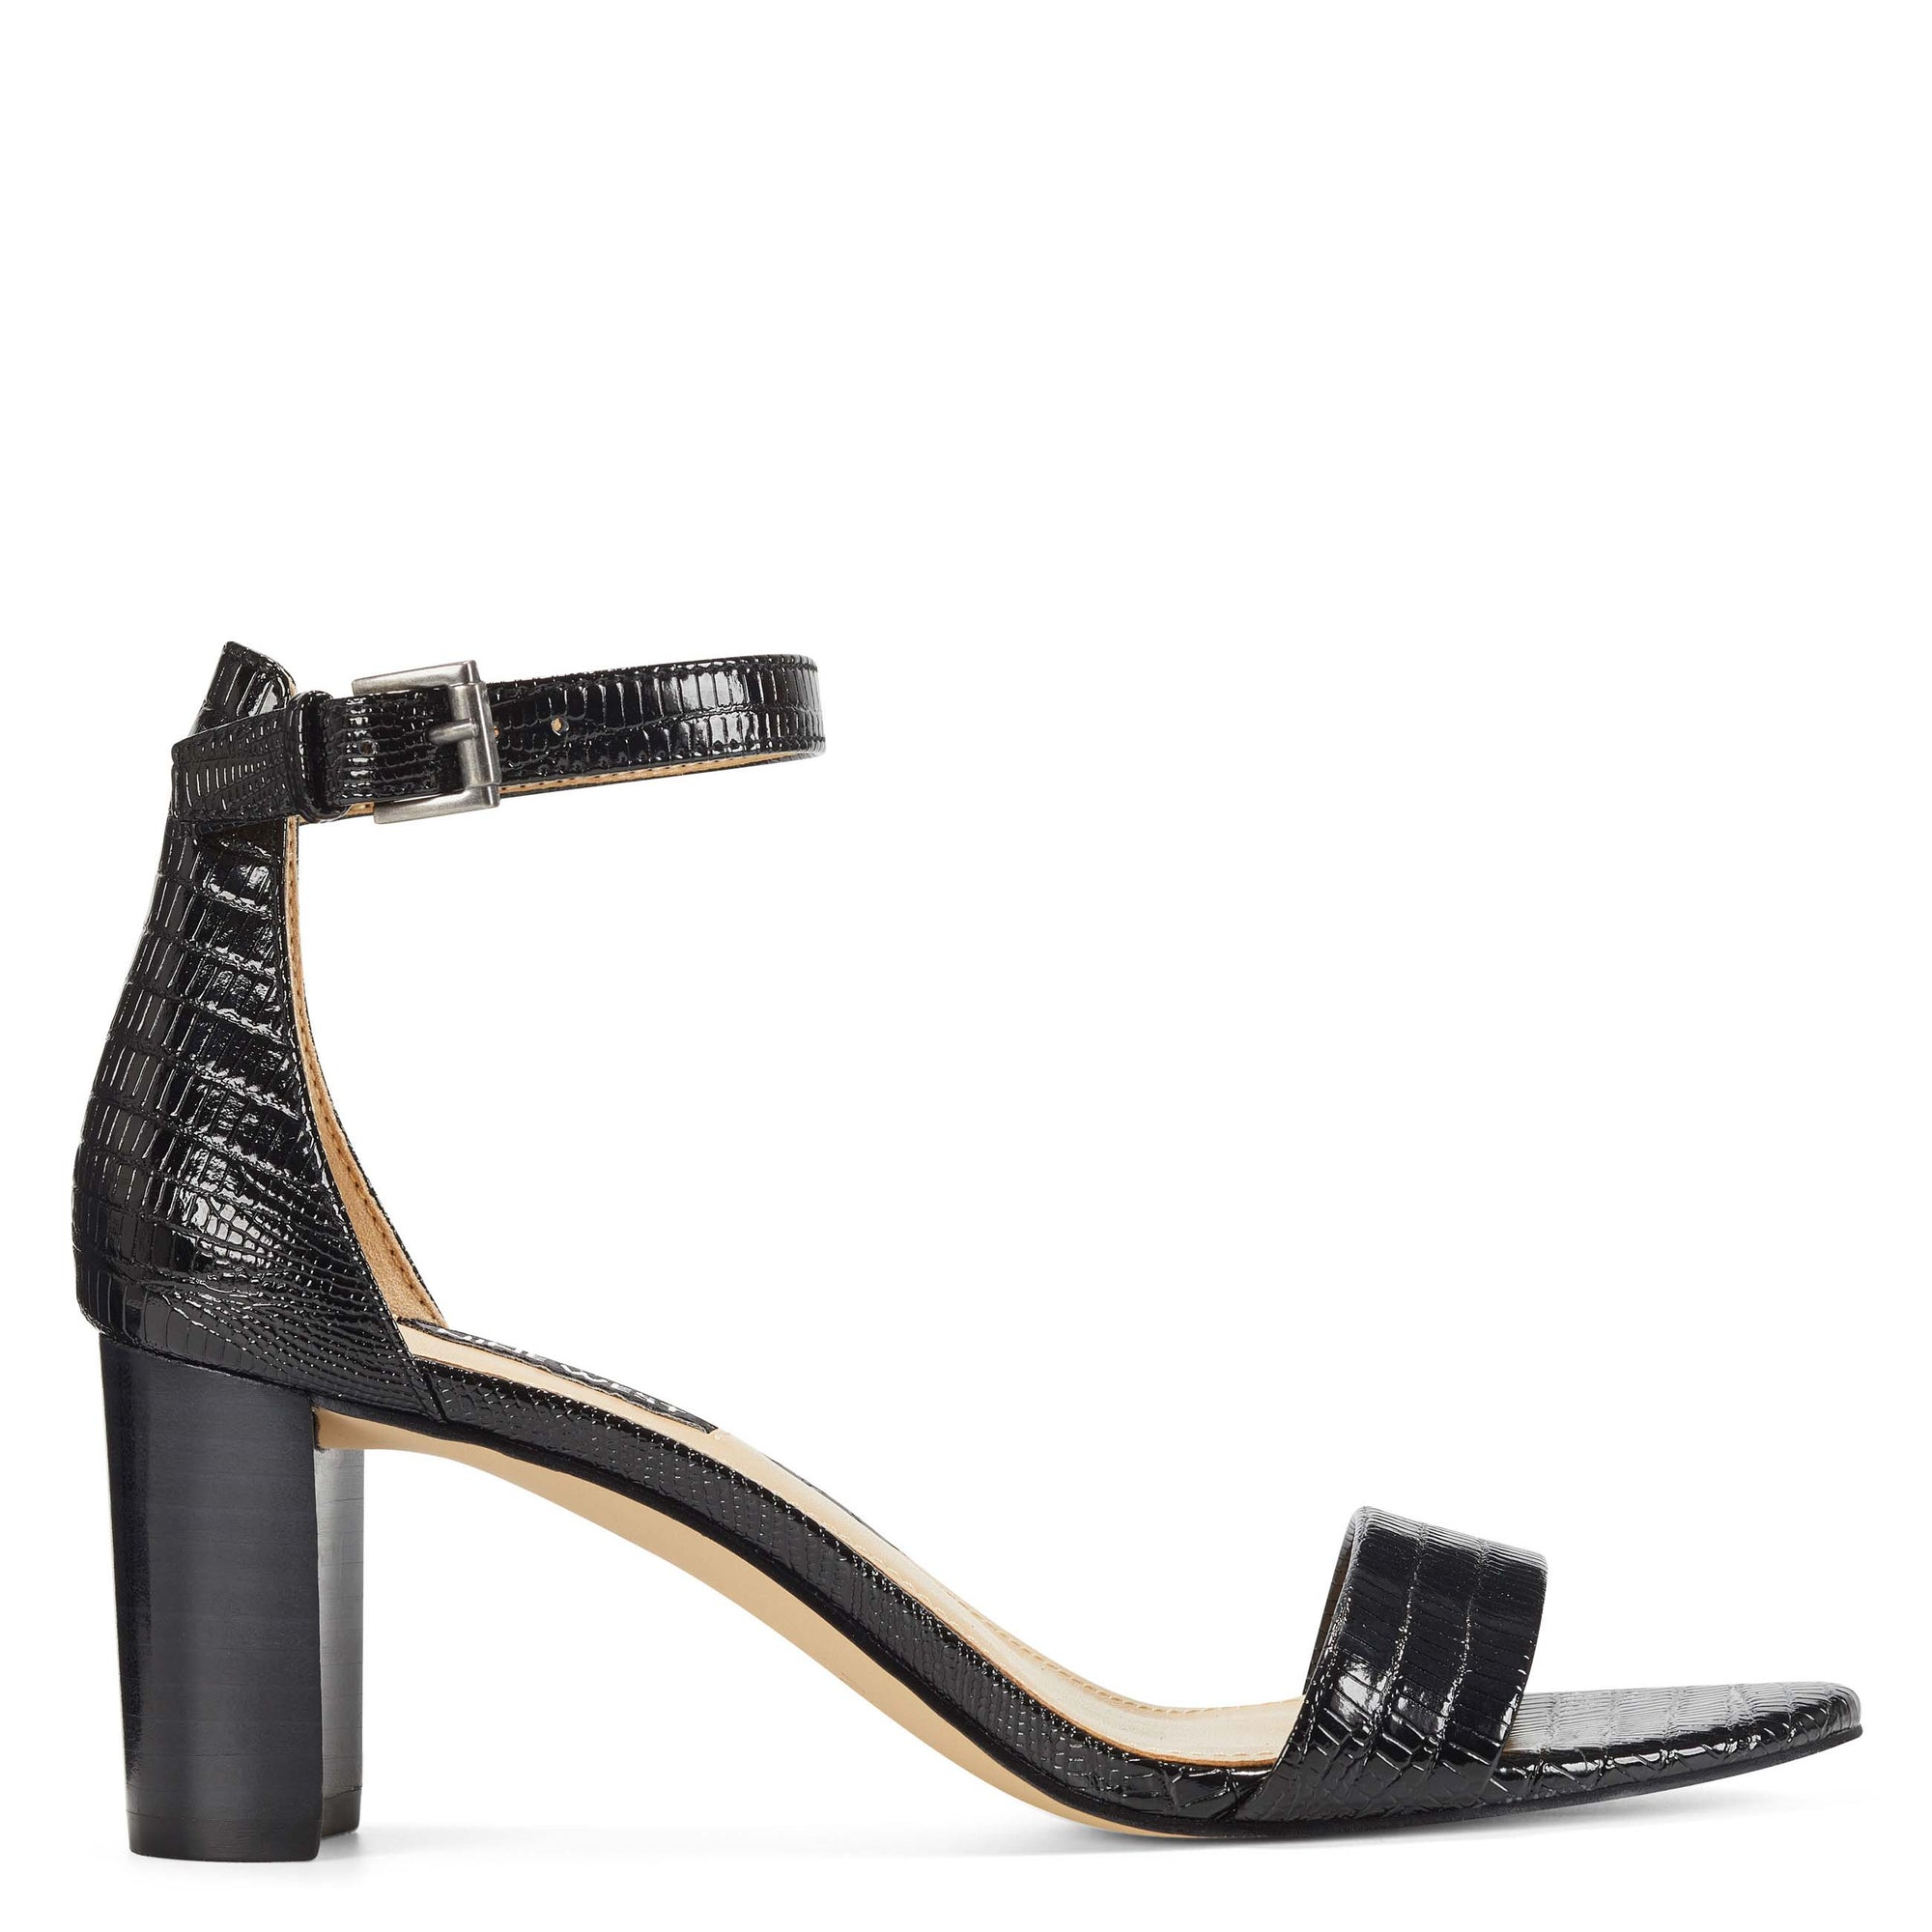 pruce-ankle-strap-block-heel-sandals-in-black-lizard-print